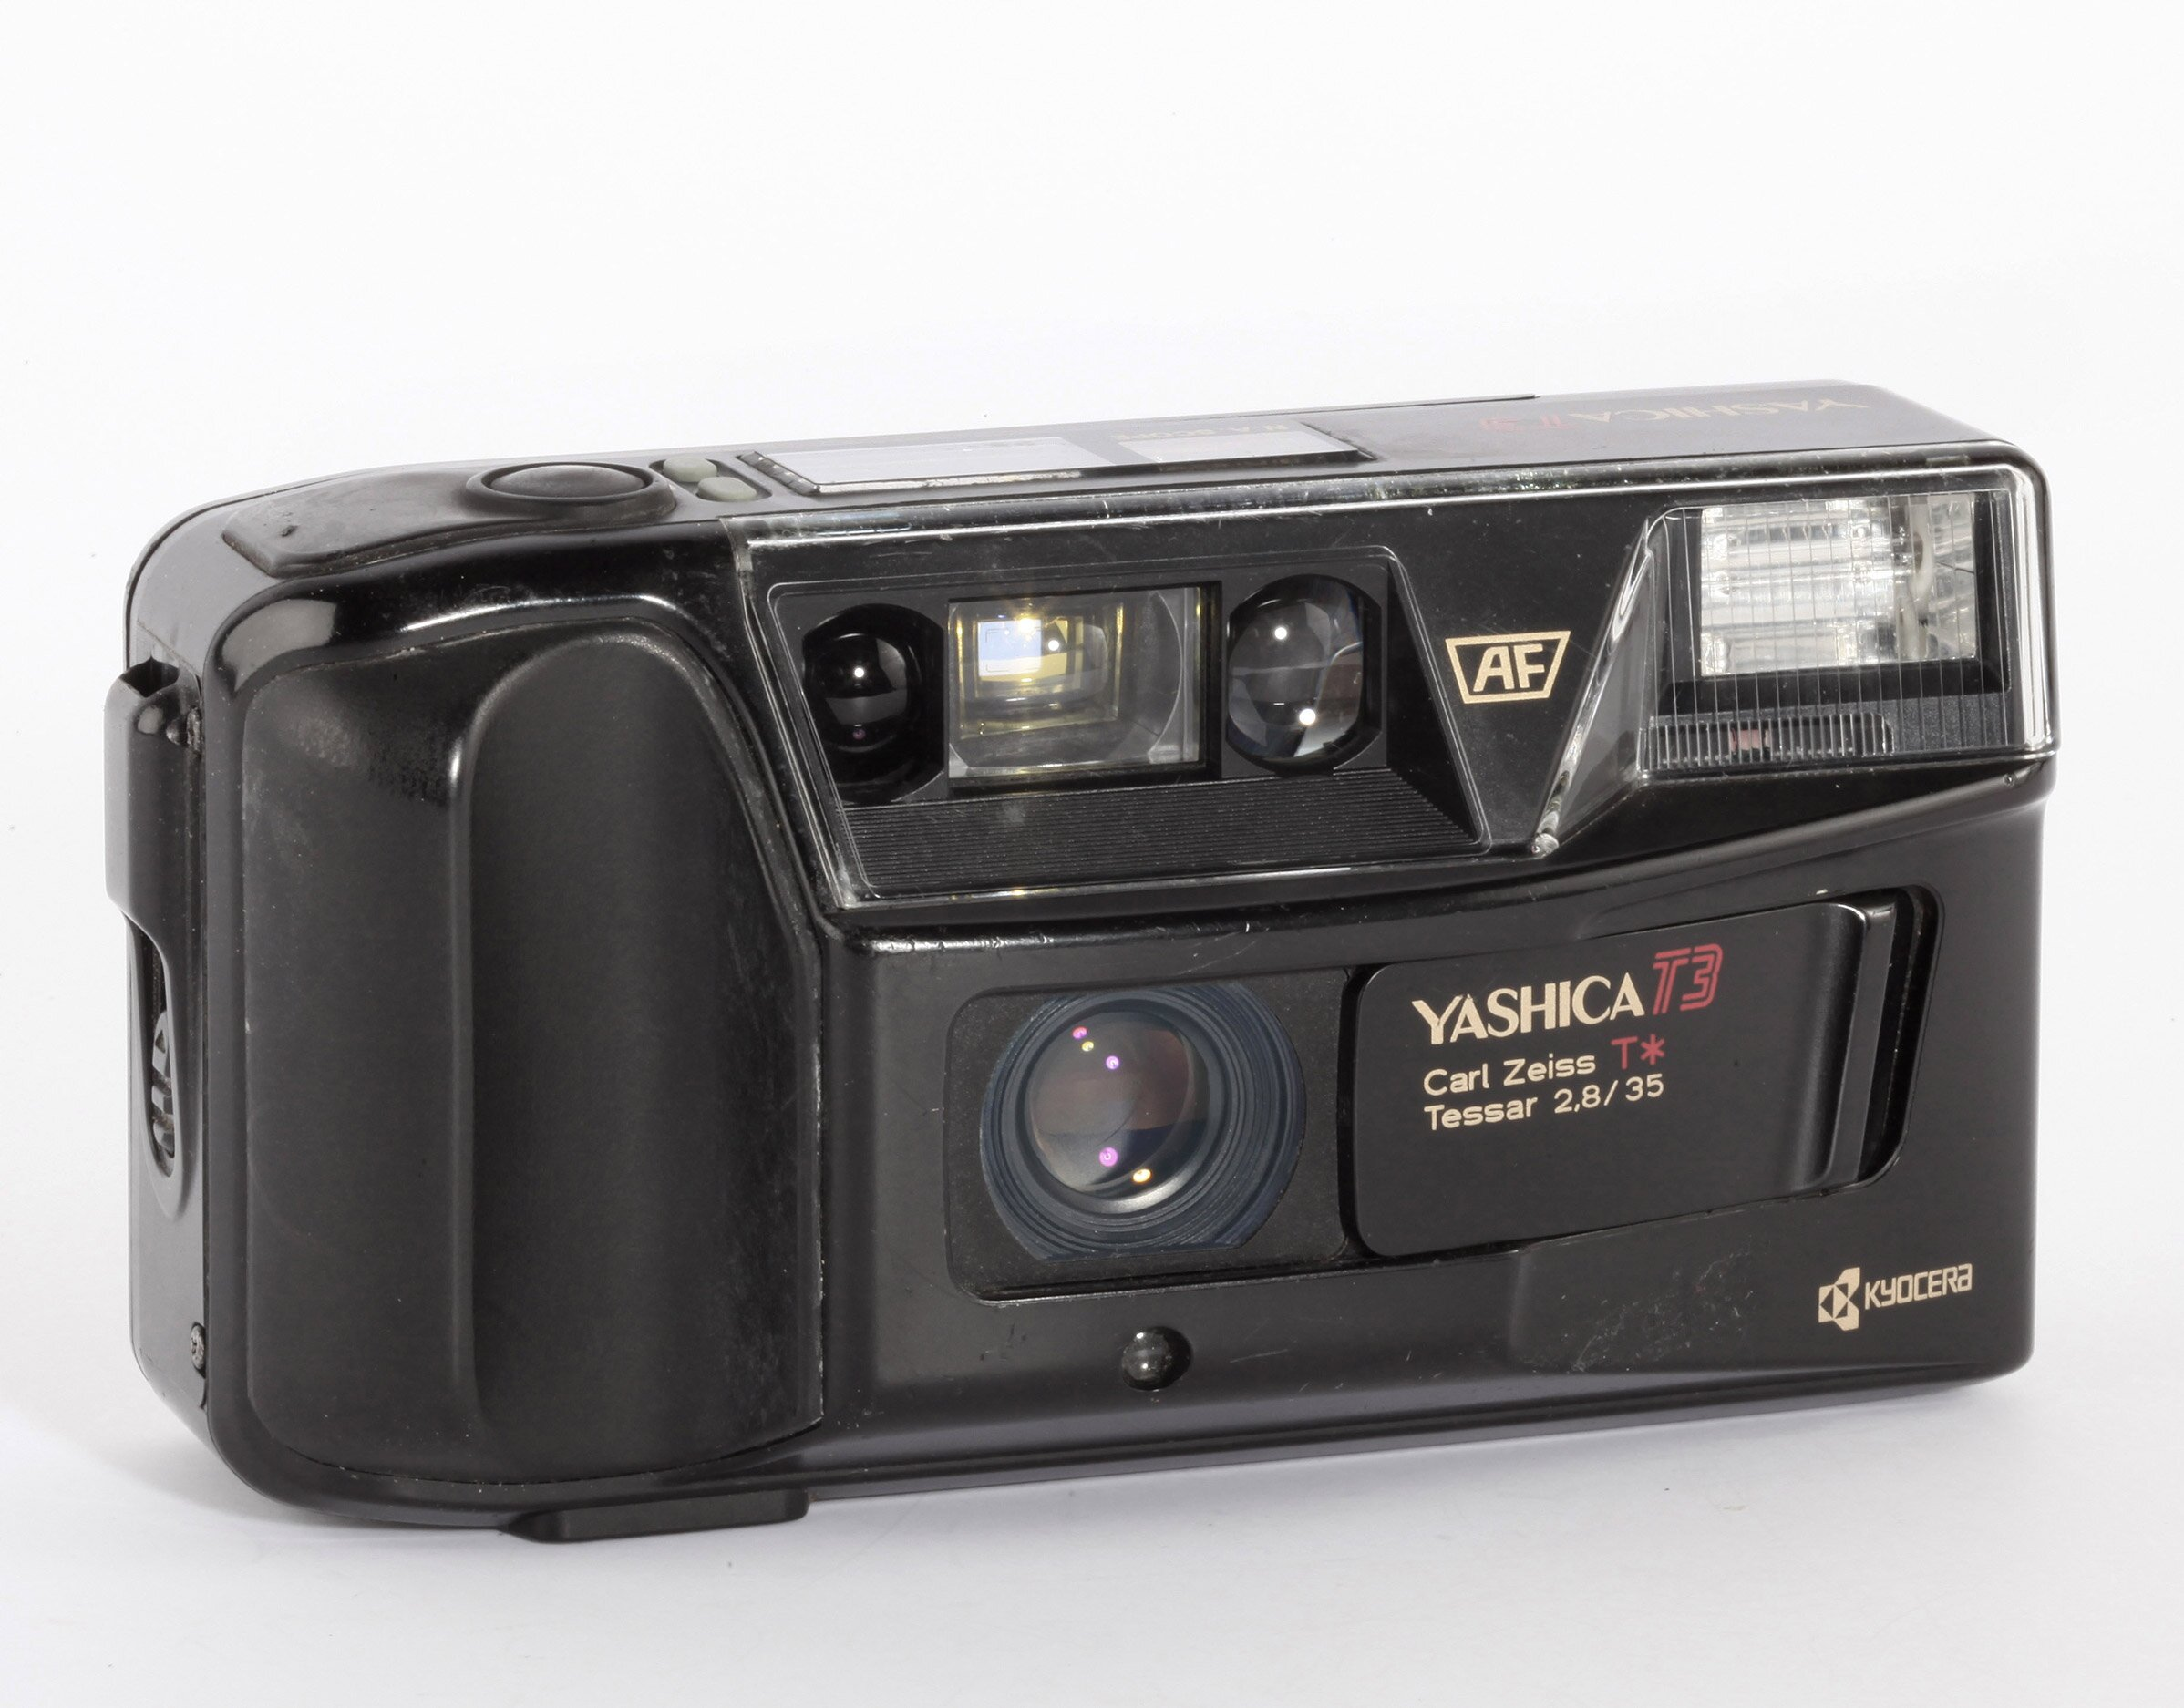 Yashica T3 Carl Zeiss T* Tessar 2,8/35mm